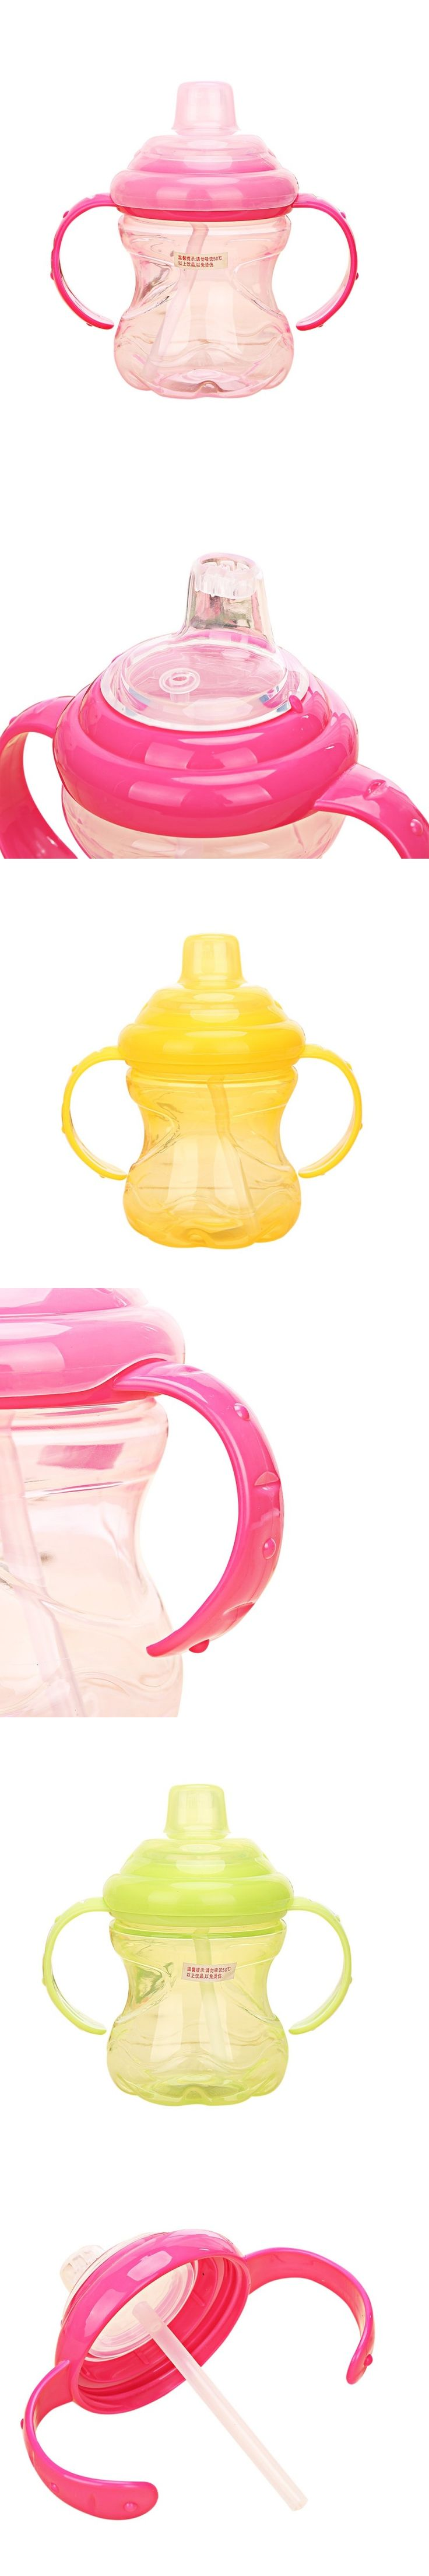 260ml Cute Baby Kids Spill-proof Sippy Cup Children Learning Feeding Drinking Water with Straw Dual Handles Bottle